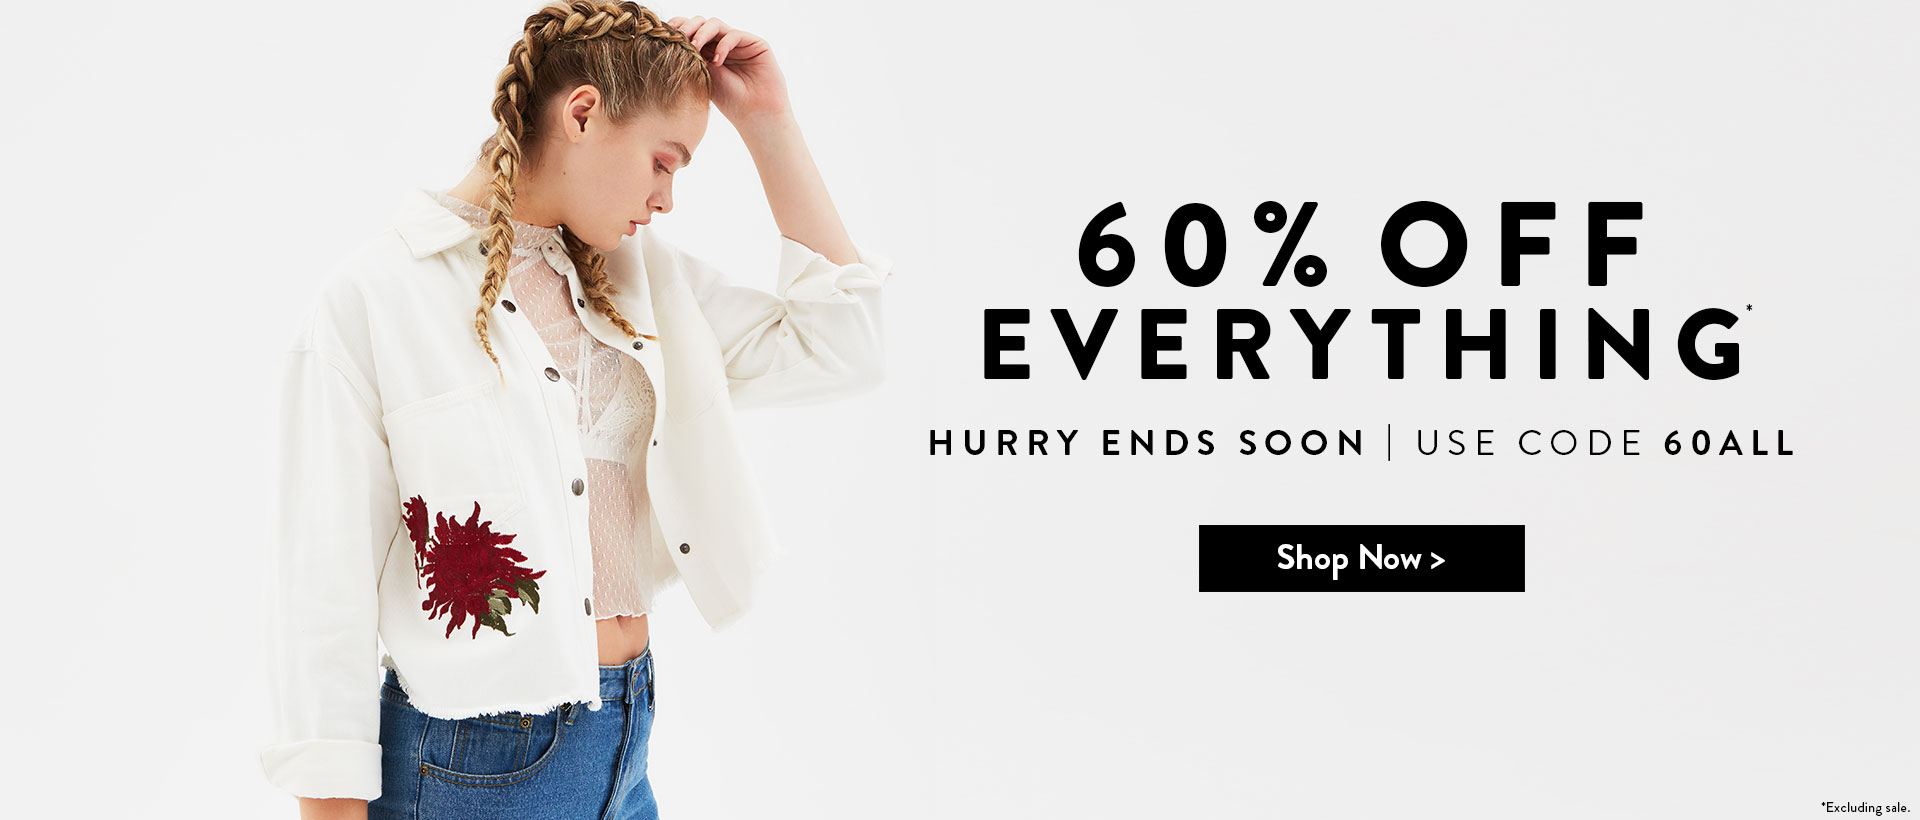 Clothes | Women's & Men's Clothing & Fashion | Online Shopping ...